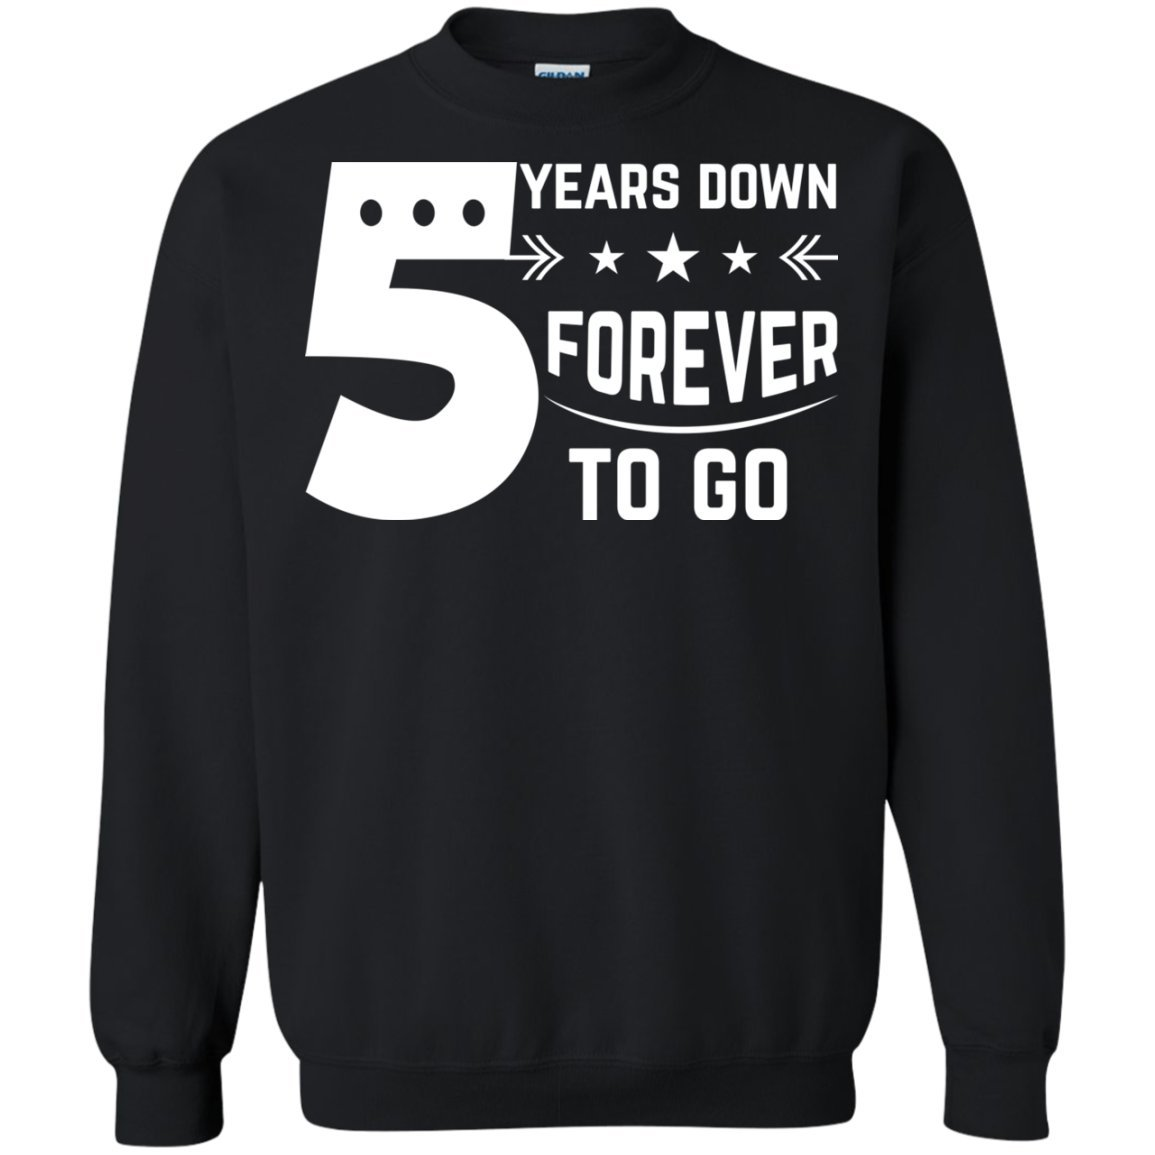 Funny Gift Birthday Awesome Tee 5th Wedding Anniversary Gift 5 Years Down Forever T-Shirt Sweatshirt